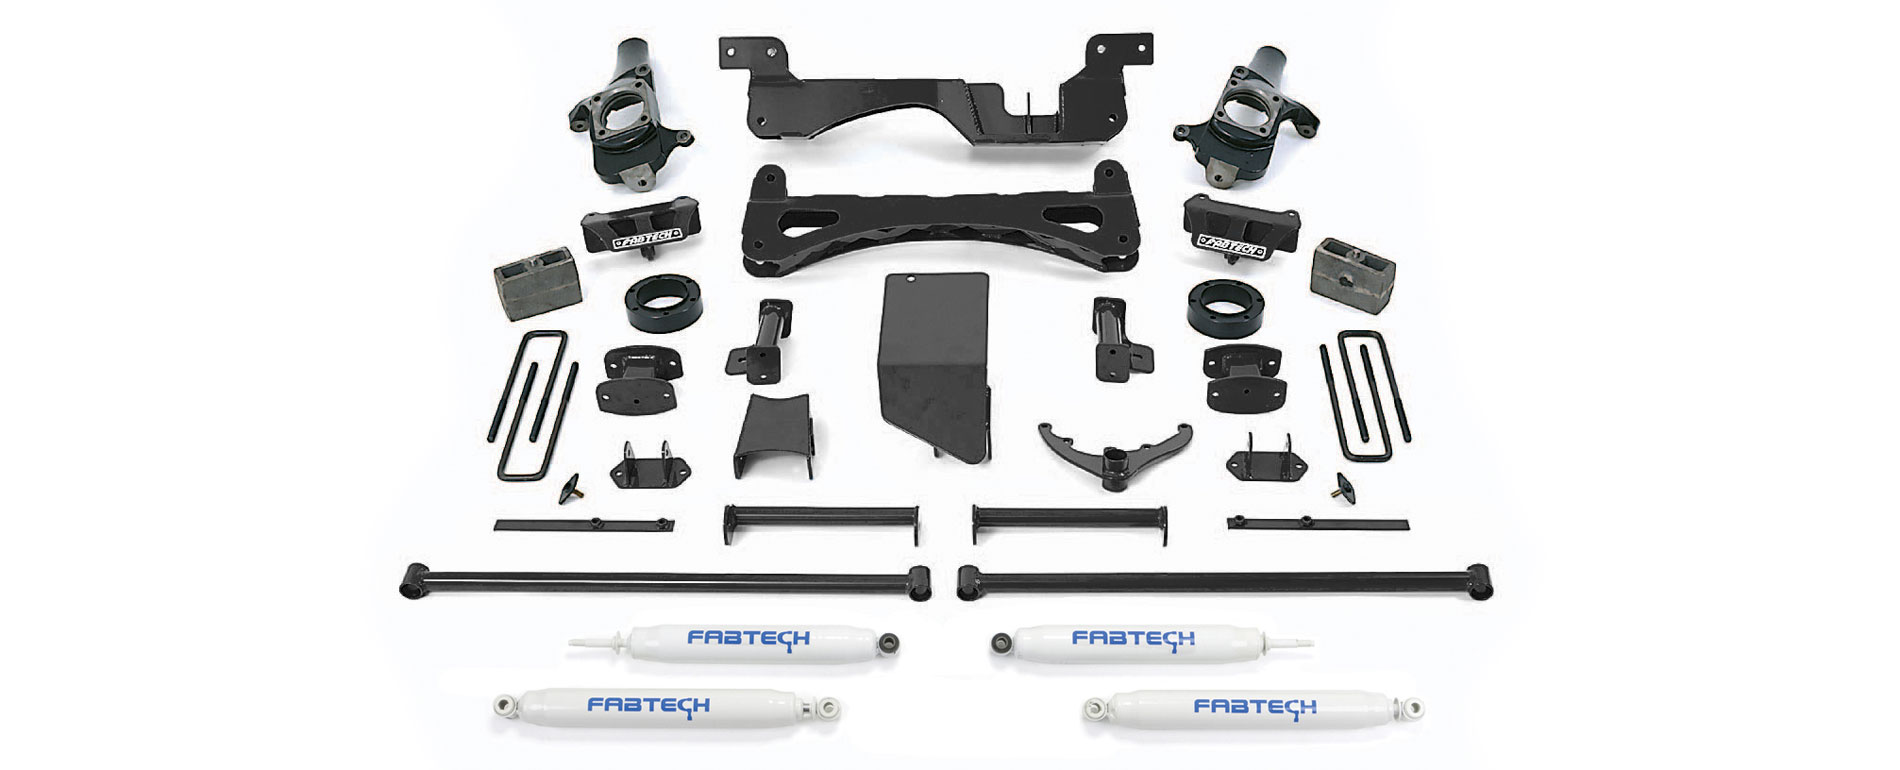 6 Inch Performance System Lift Kit With Performance Shocks